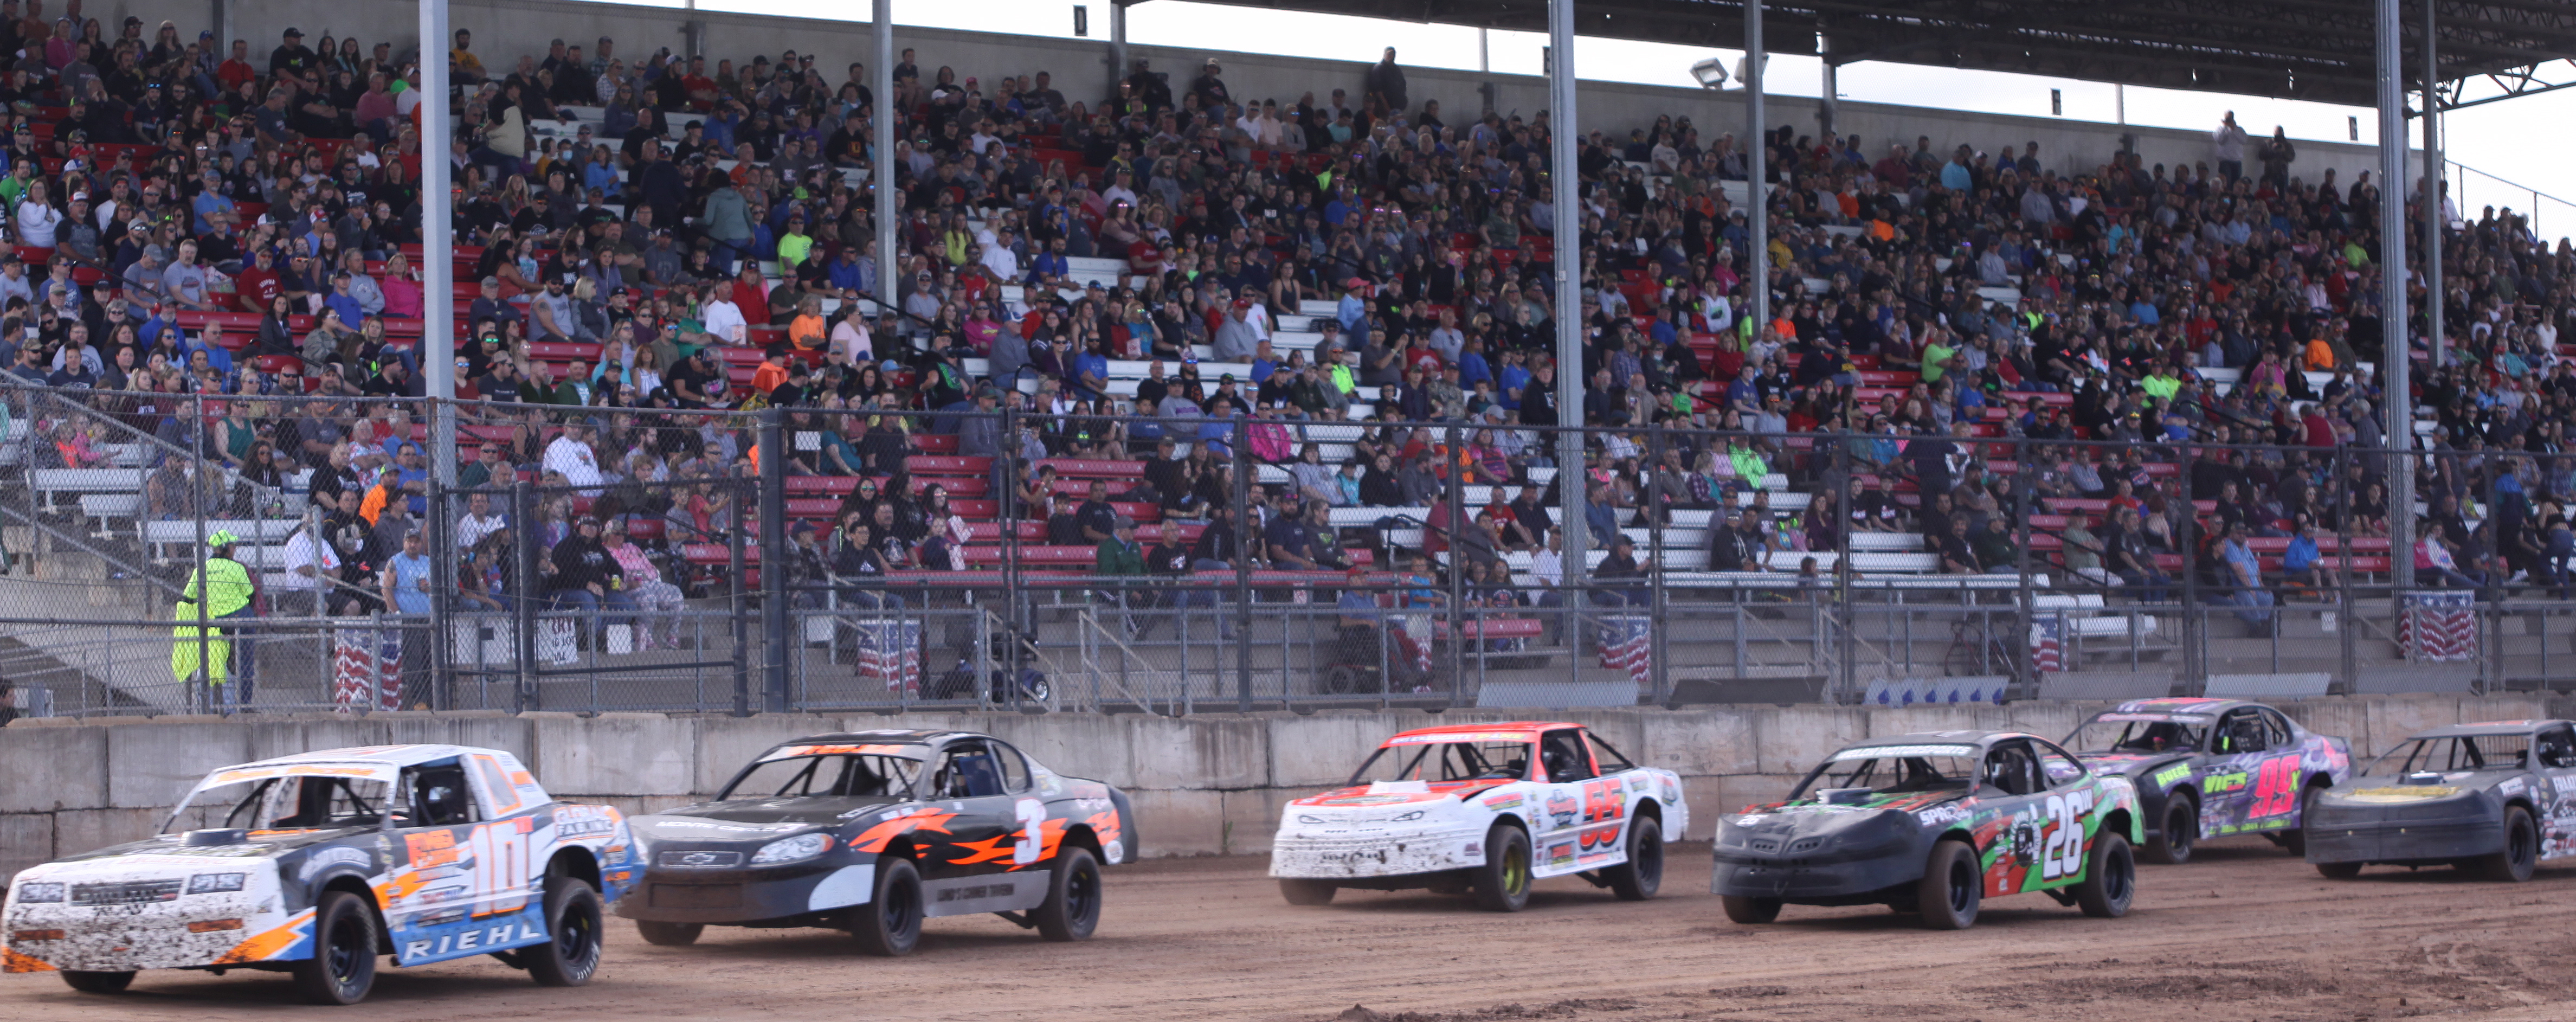 Tom Riehl (10), Dylan Stedjee (3), Shawn Wagner (55), Travis Welch (26) Jeremy Christians (99), Mitch Stankowski, right, compete in a IMCA Stock Car heat race in front of a packed grandstand at Shawano Speedway on Saturday.<br />Morgan Rode | NEW Media